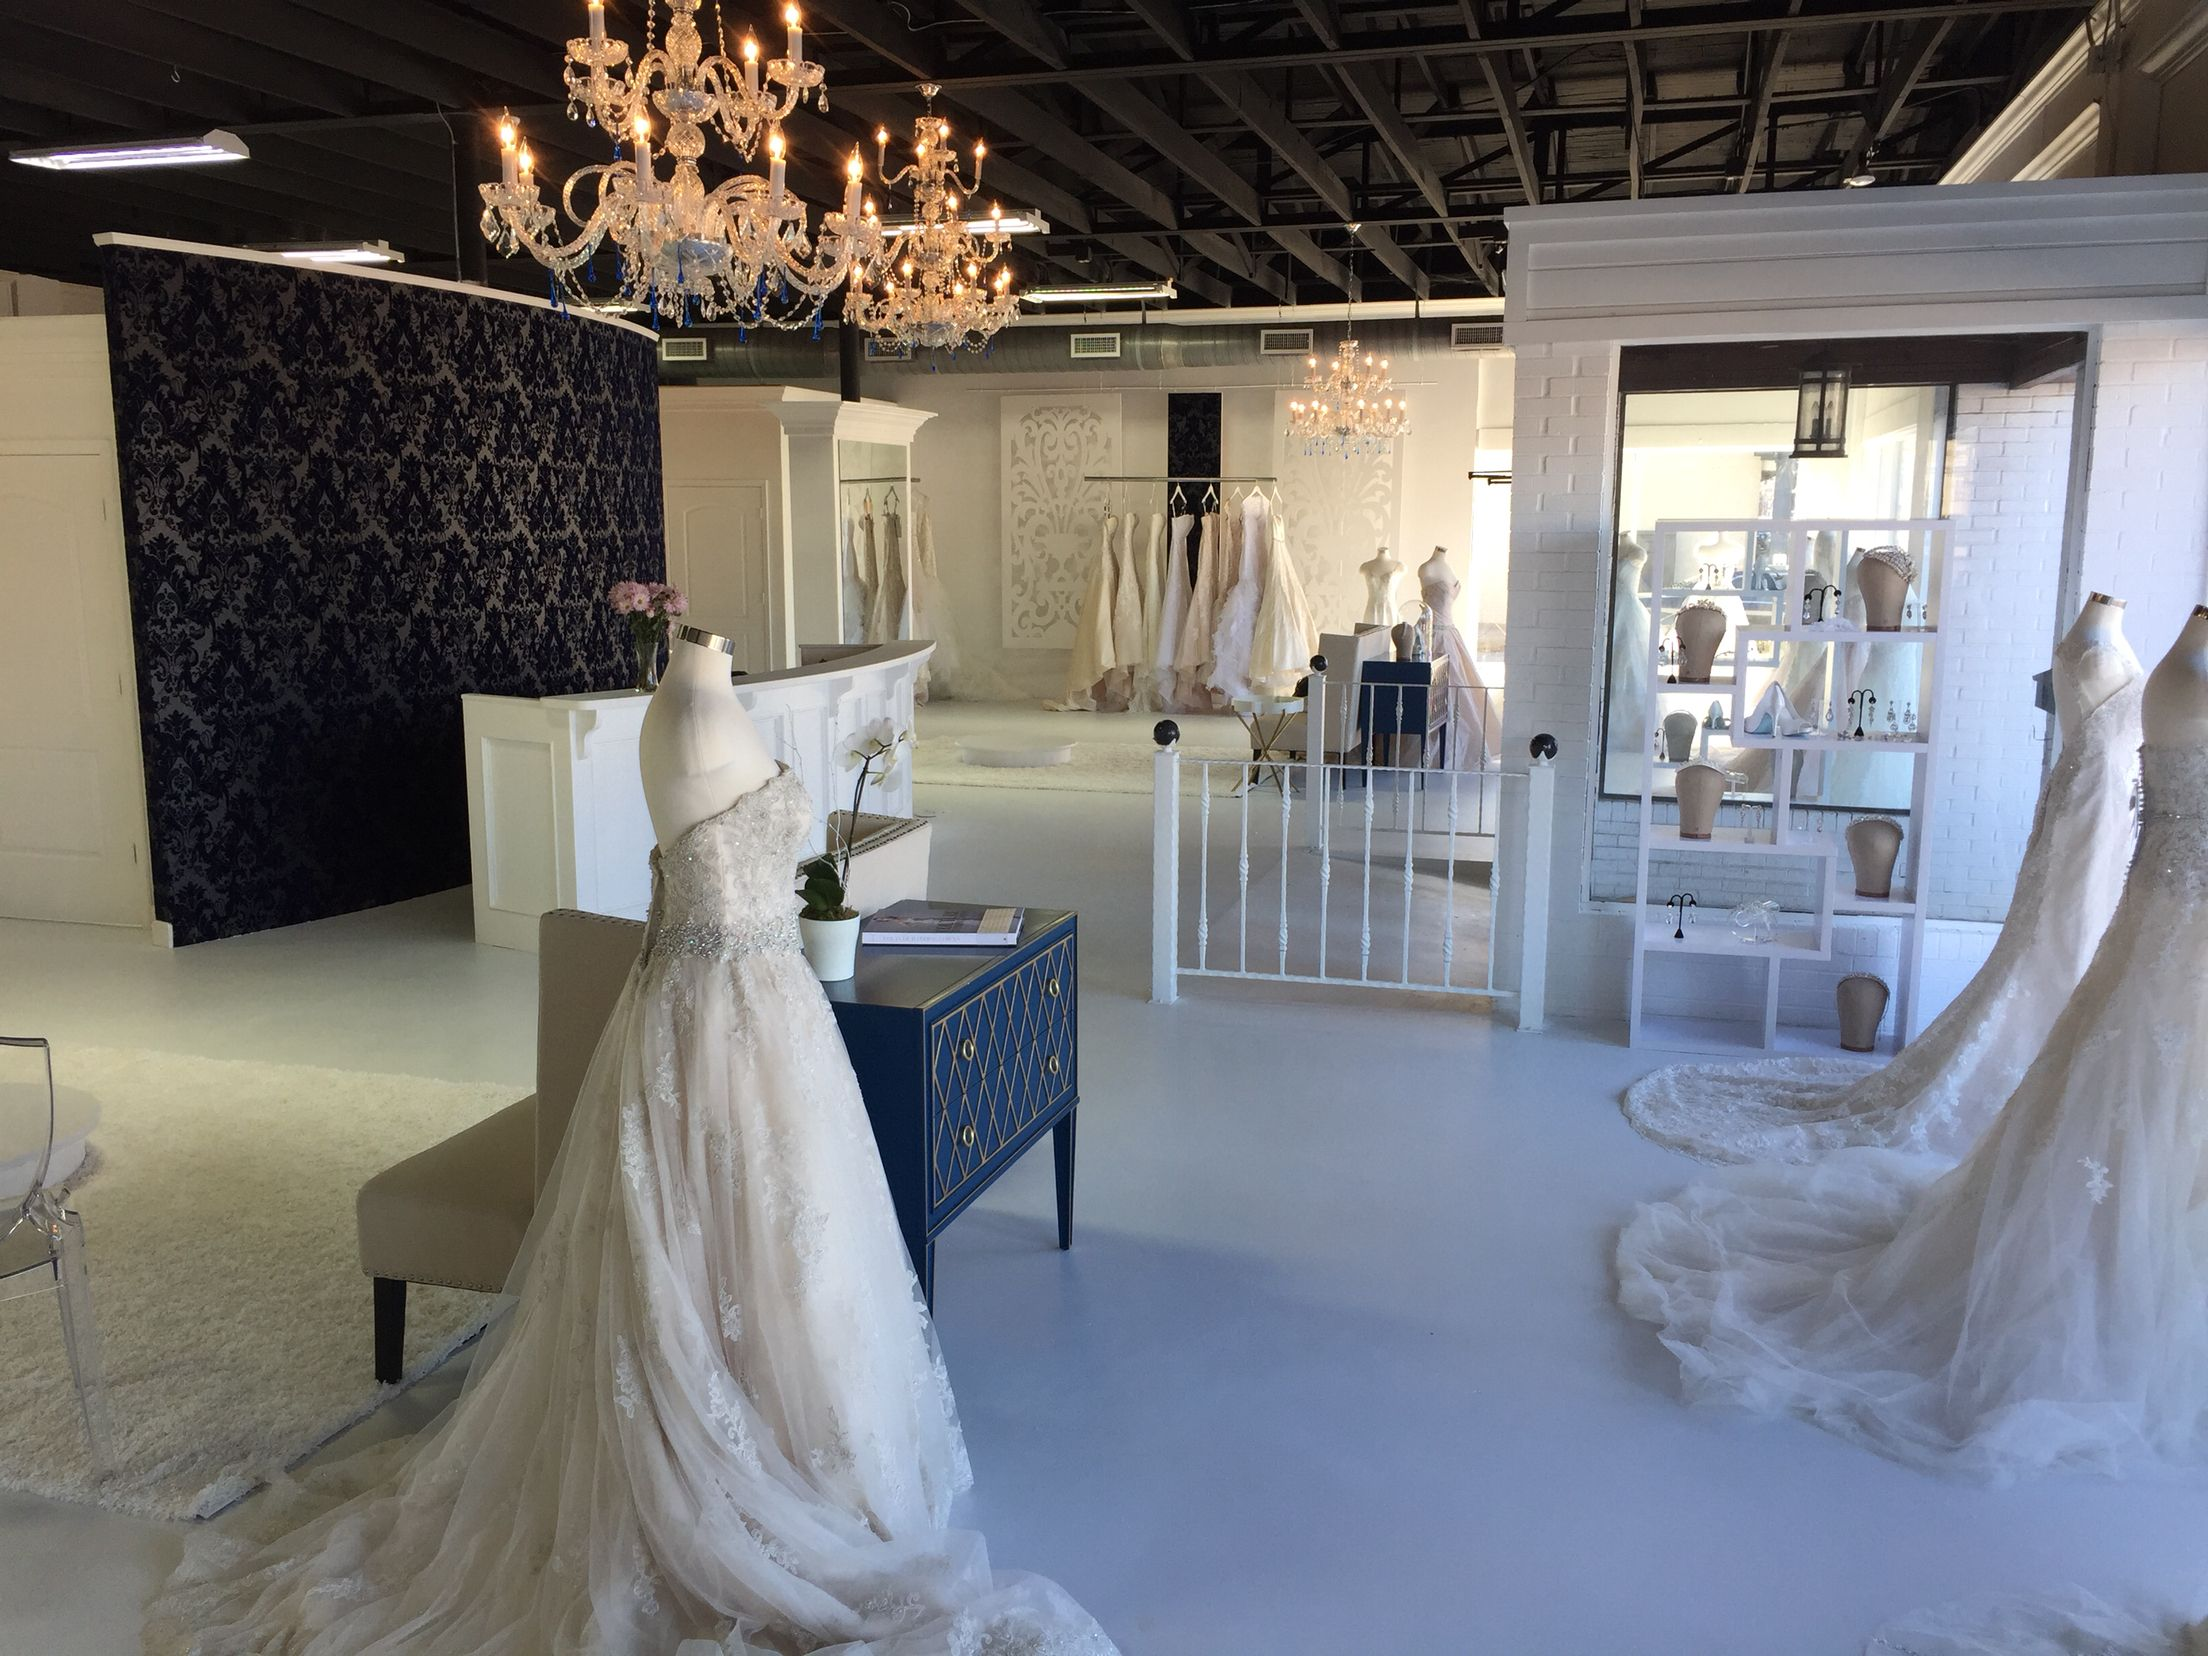 inverness bridal couture conway ar our little shop